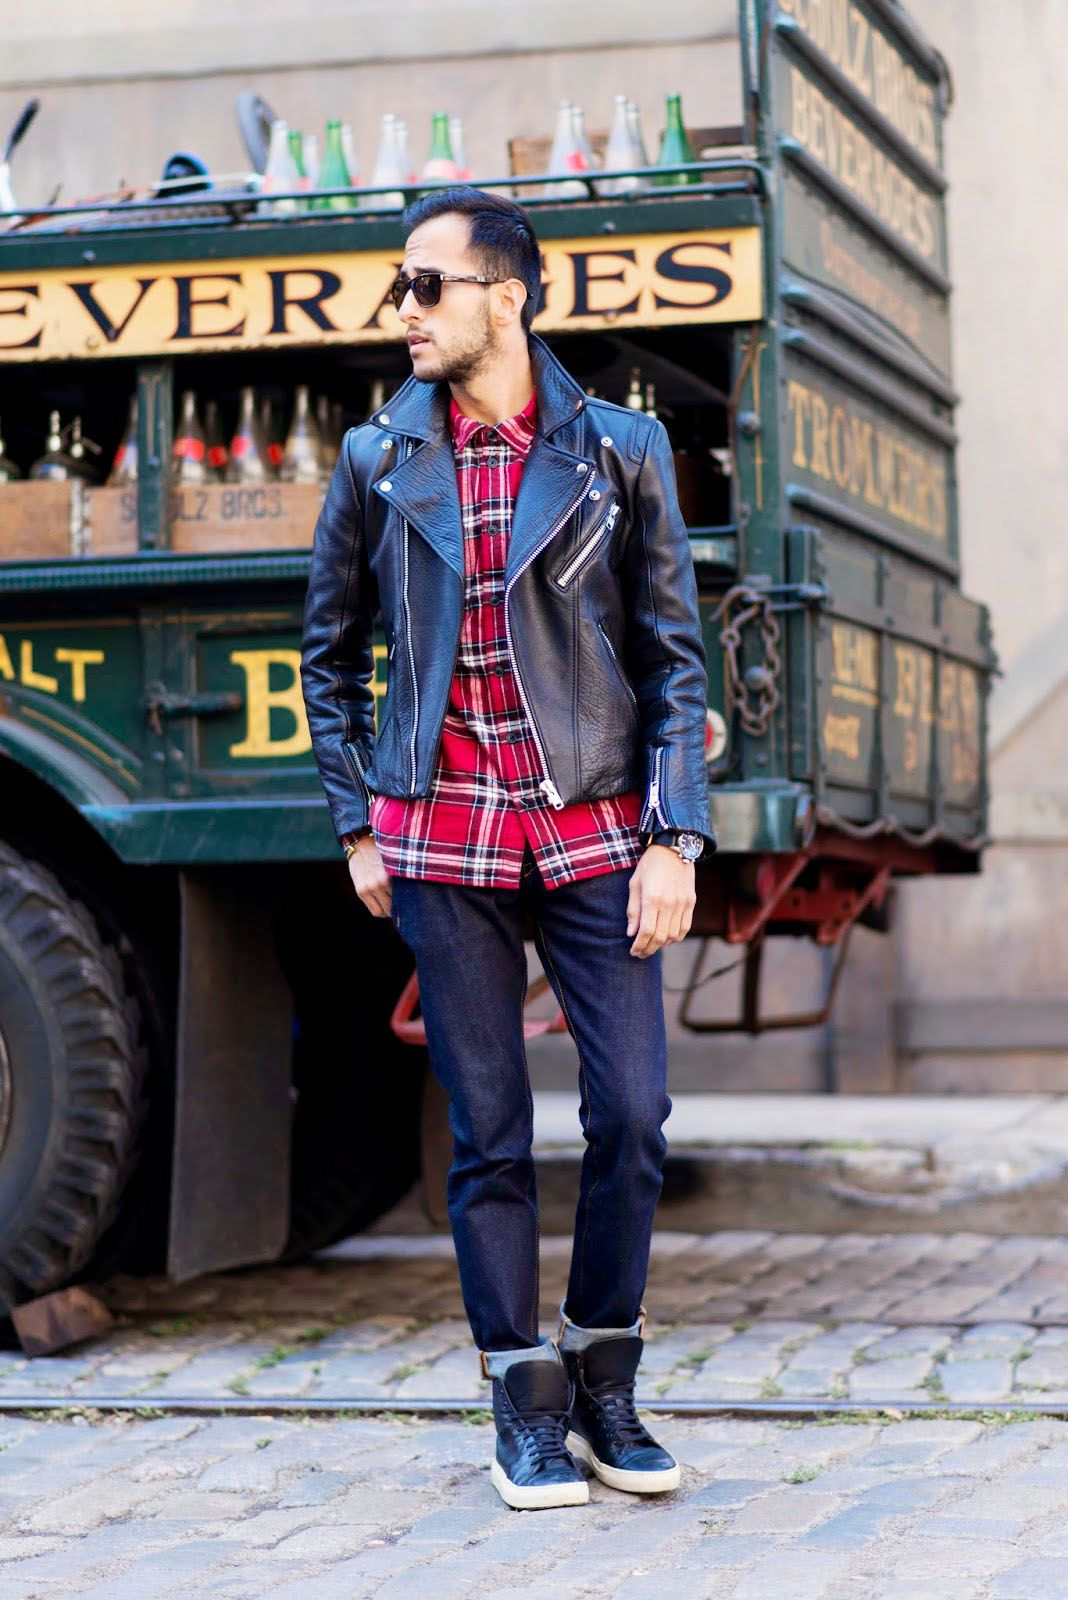 Themetroman Is Ready For Leather Weather In An H M Premium Quality Biker Jacket Red Plaid Flannel Shir Jackets Men Fashion Stylish Jackets First Date Outfits [ 1600 x 1068 Pixel ]